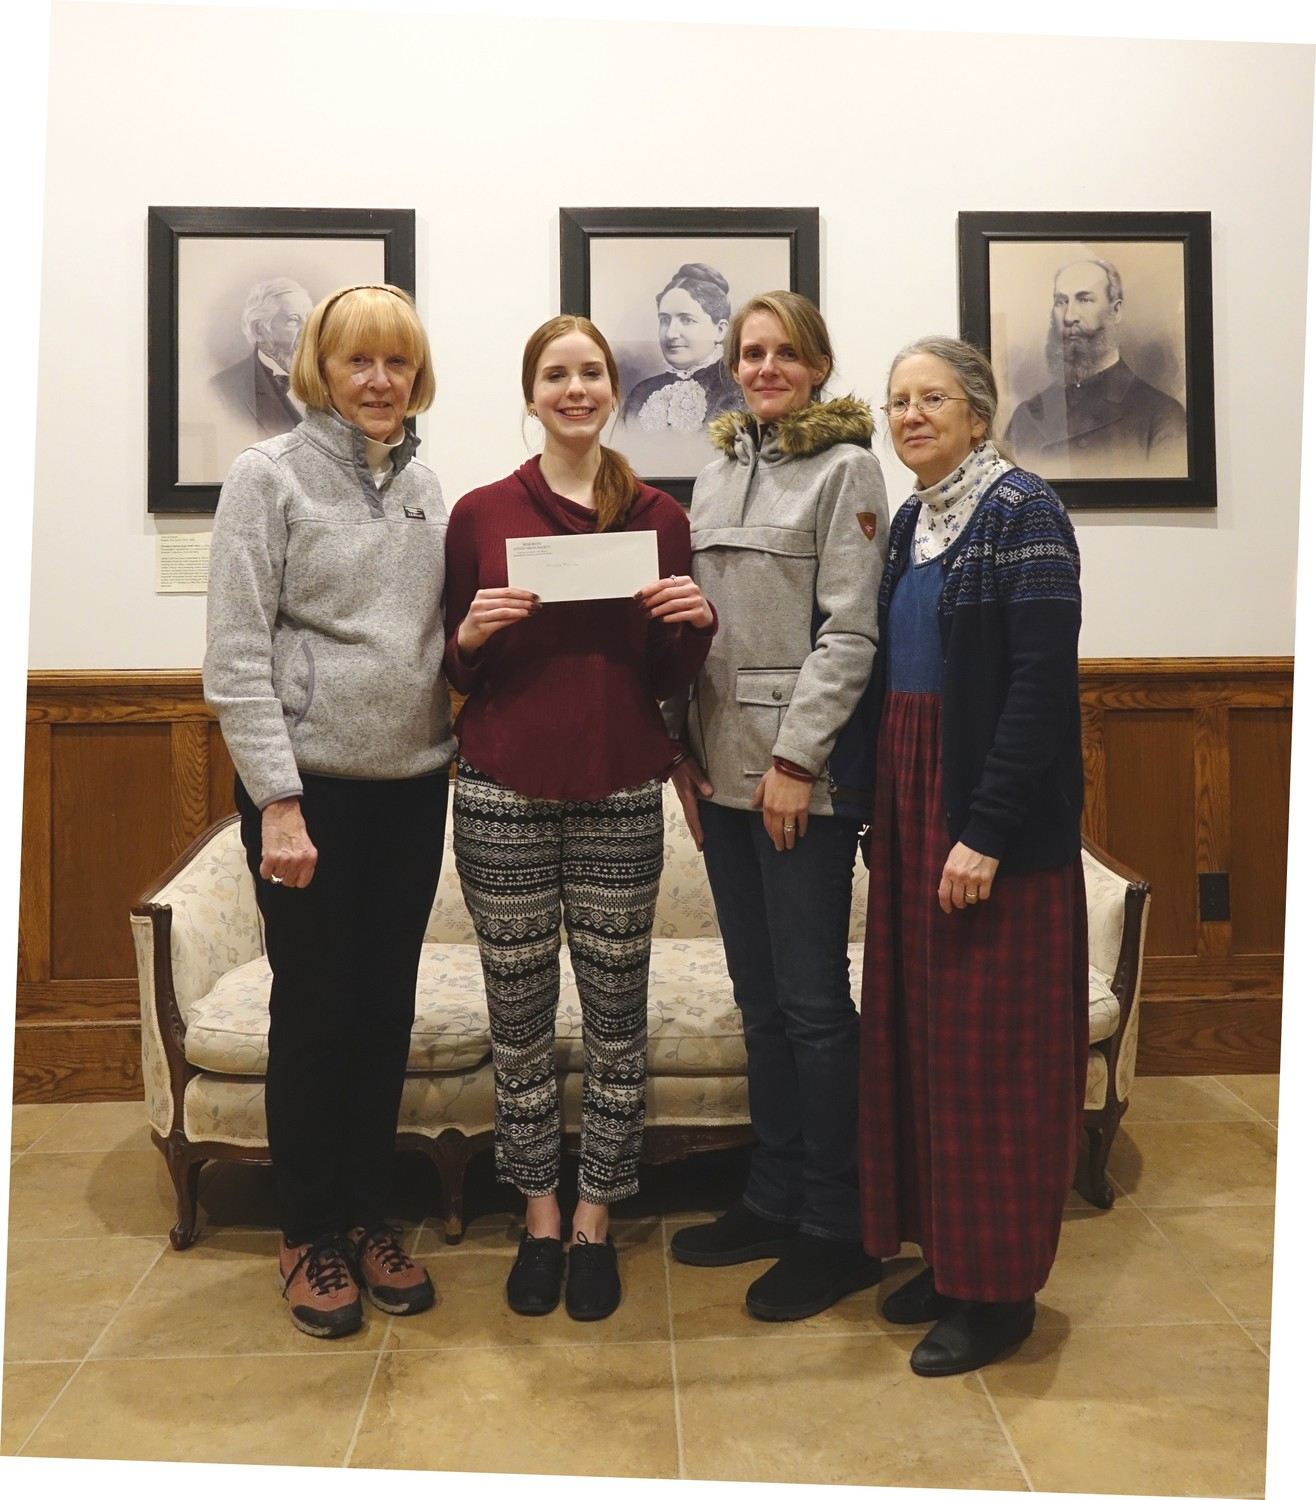 Left to right: Maureen Whittemore, RAS Trustee, Micaela Rennick, Scholarship Recipient, Anna Deignan, RAS Scholarship Committee, Rebecca Smith, RAS President